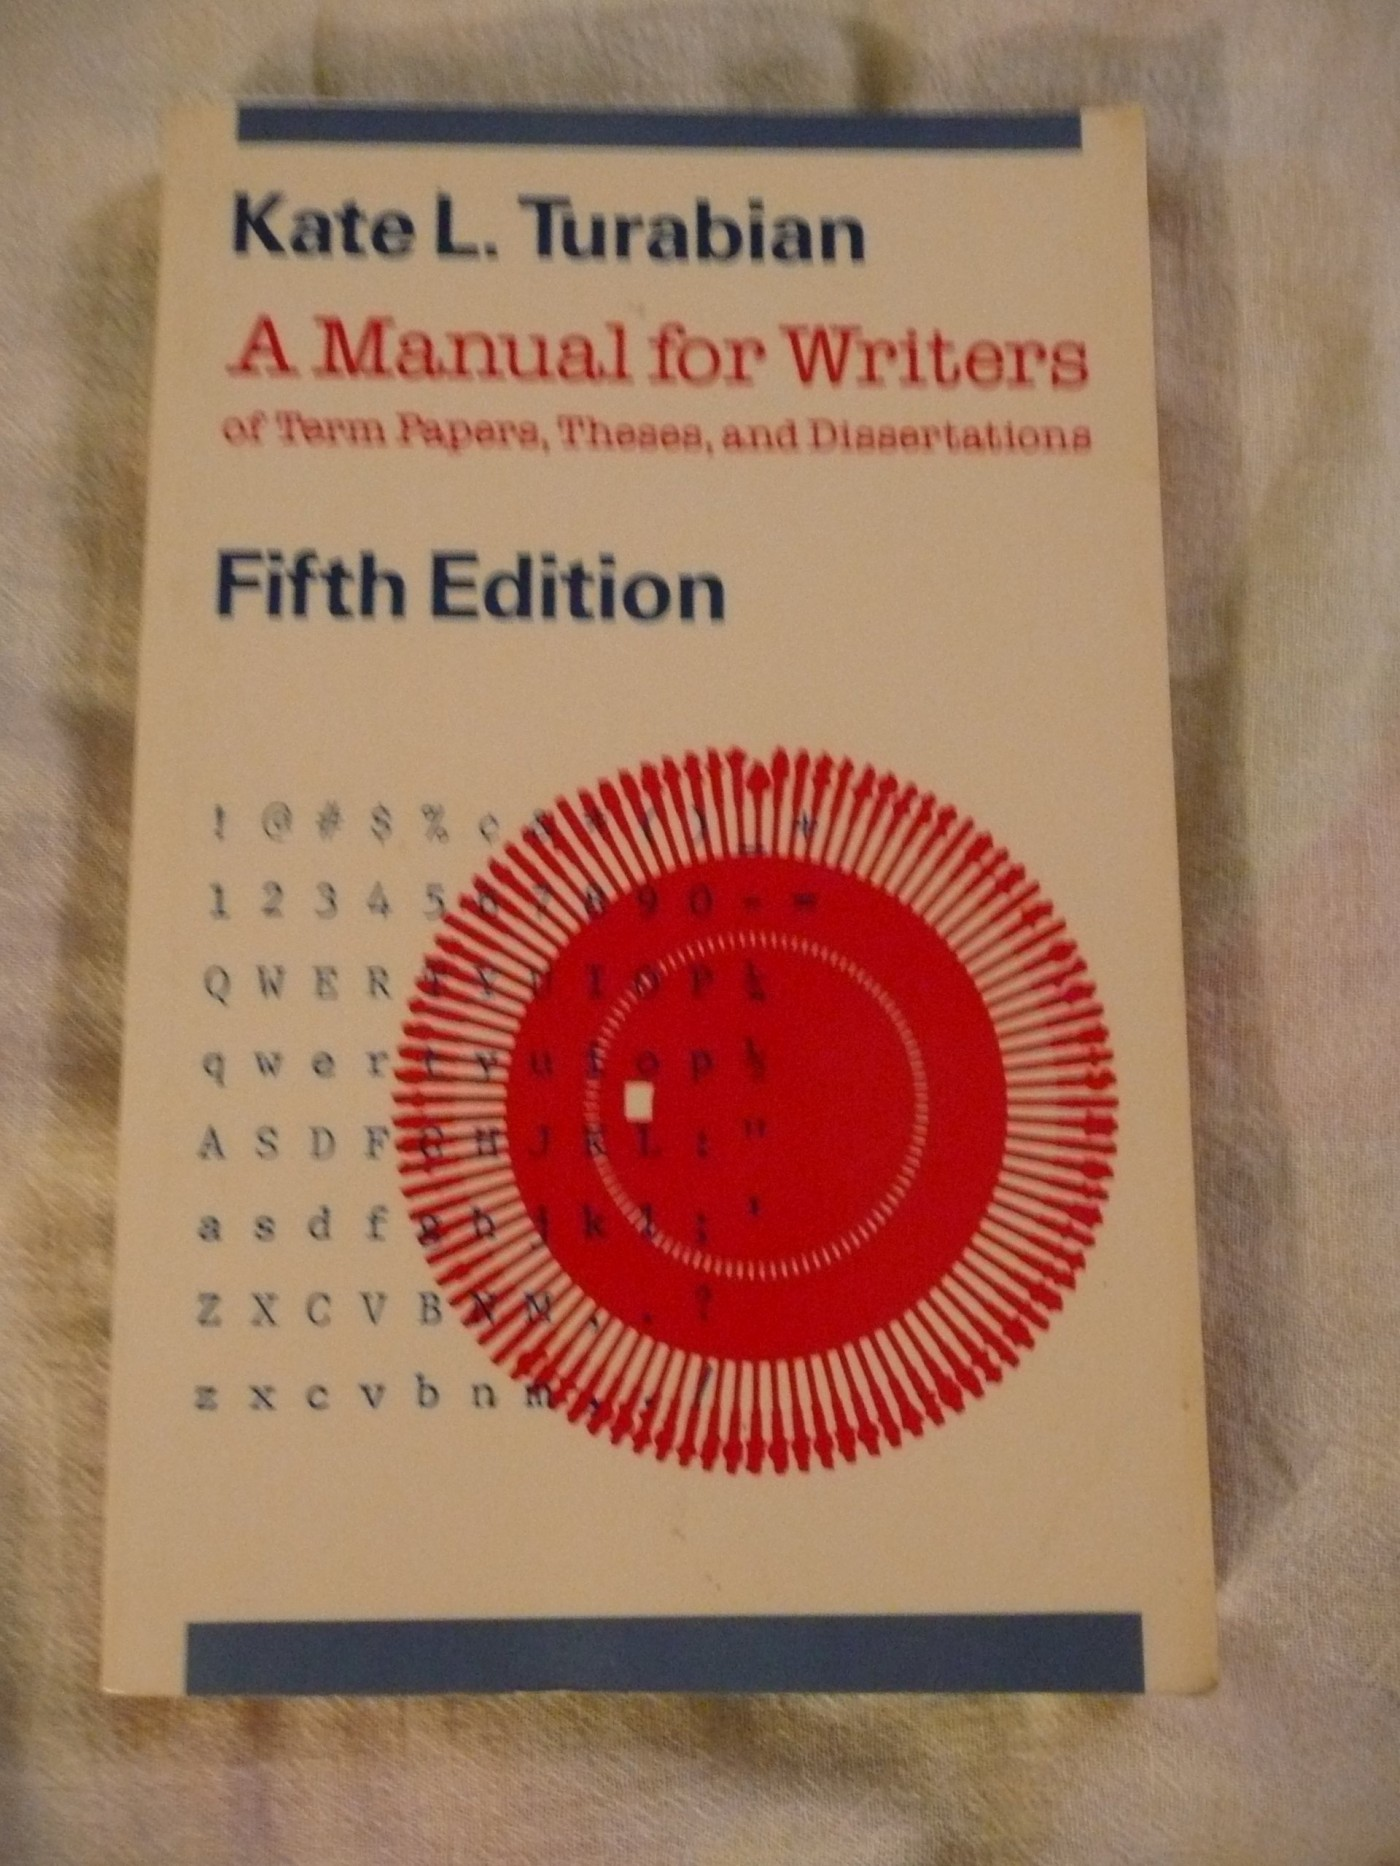 014 Manual For Writers Of Researchs Theses And Dissertations Ebook 91nltv7olql Unbelievable A Research Papers 1400